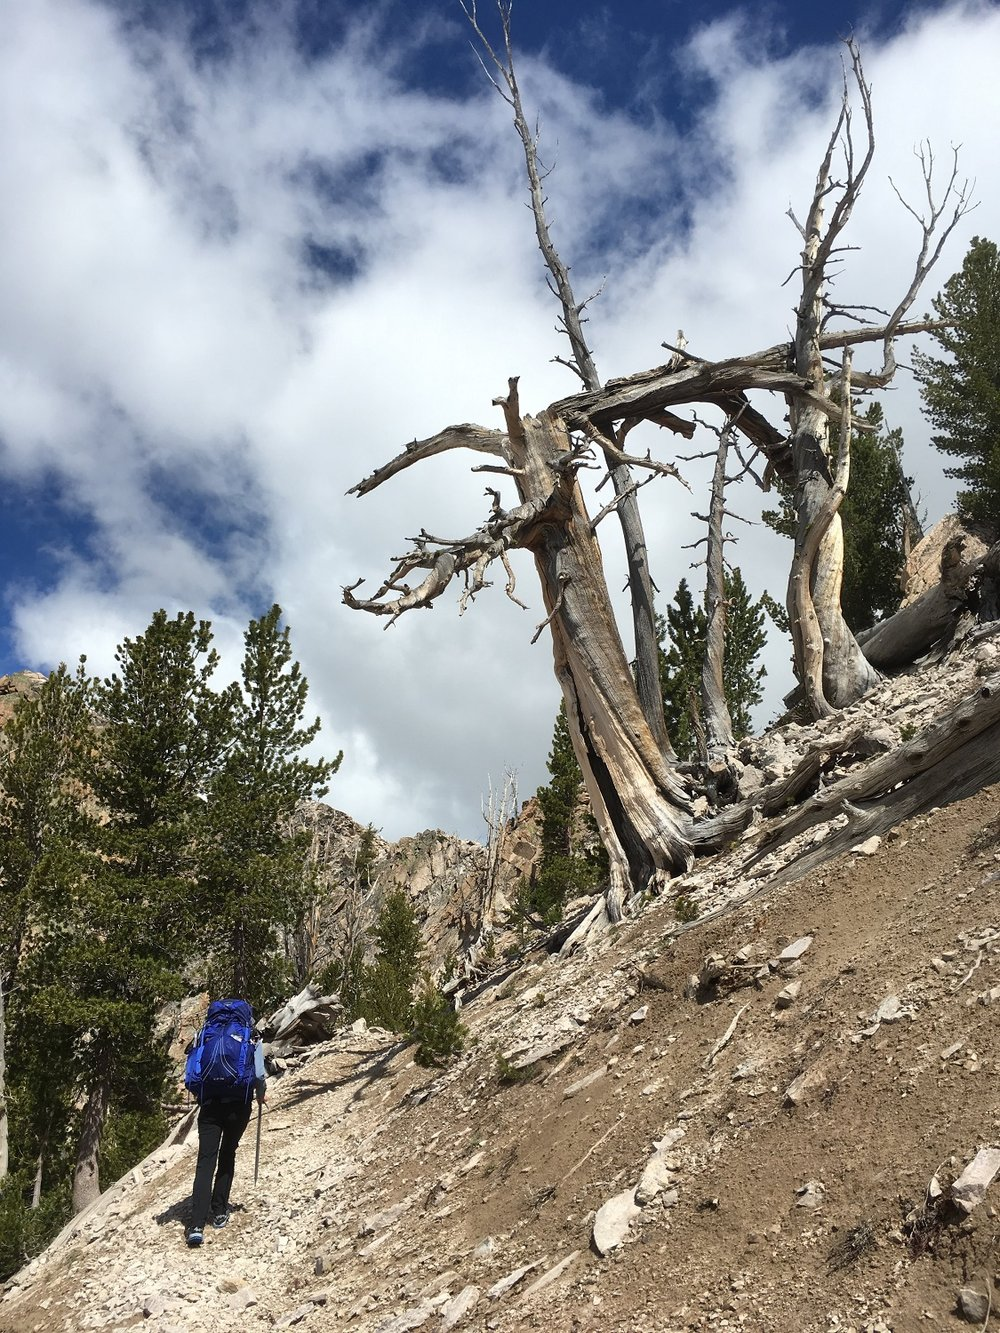 Whitebark pines